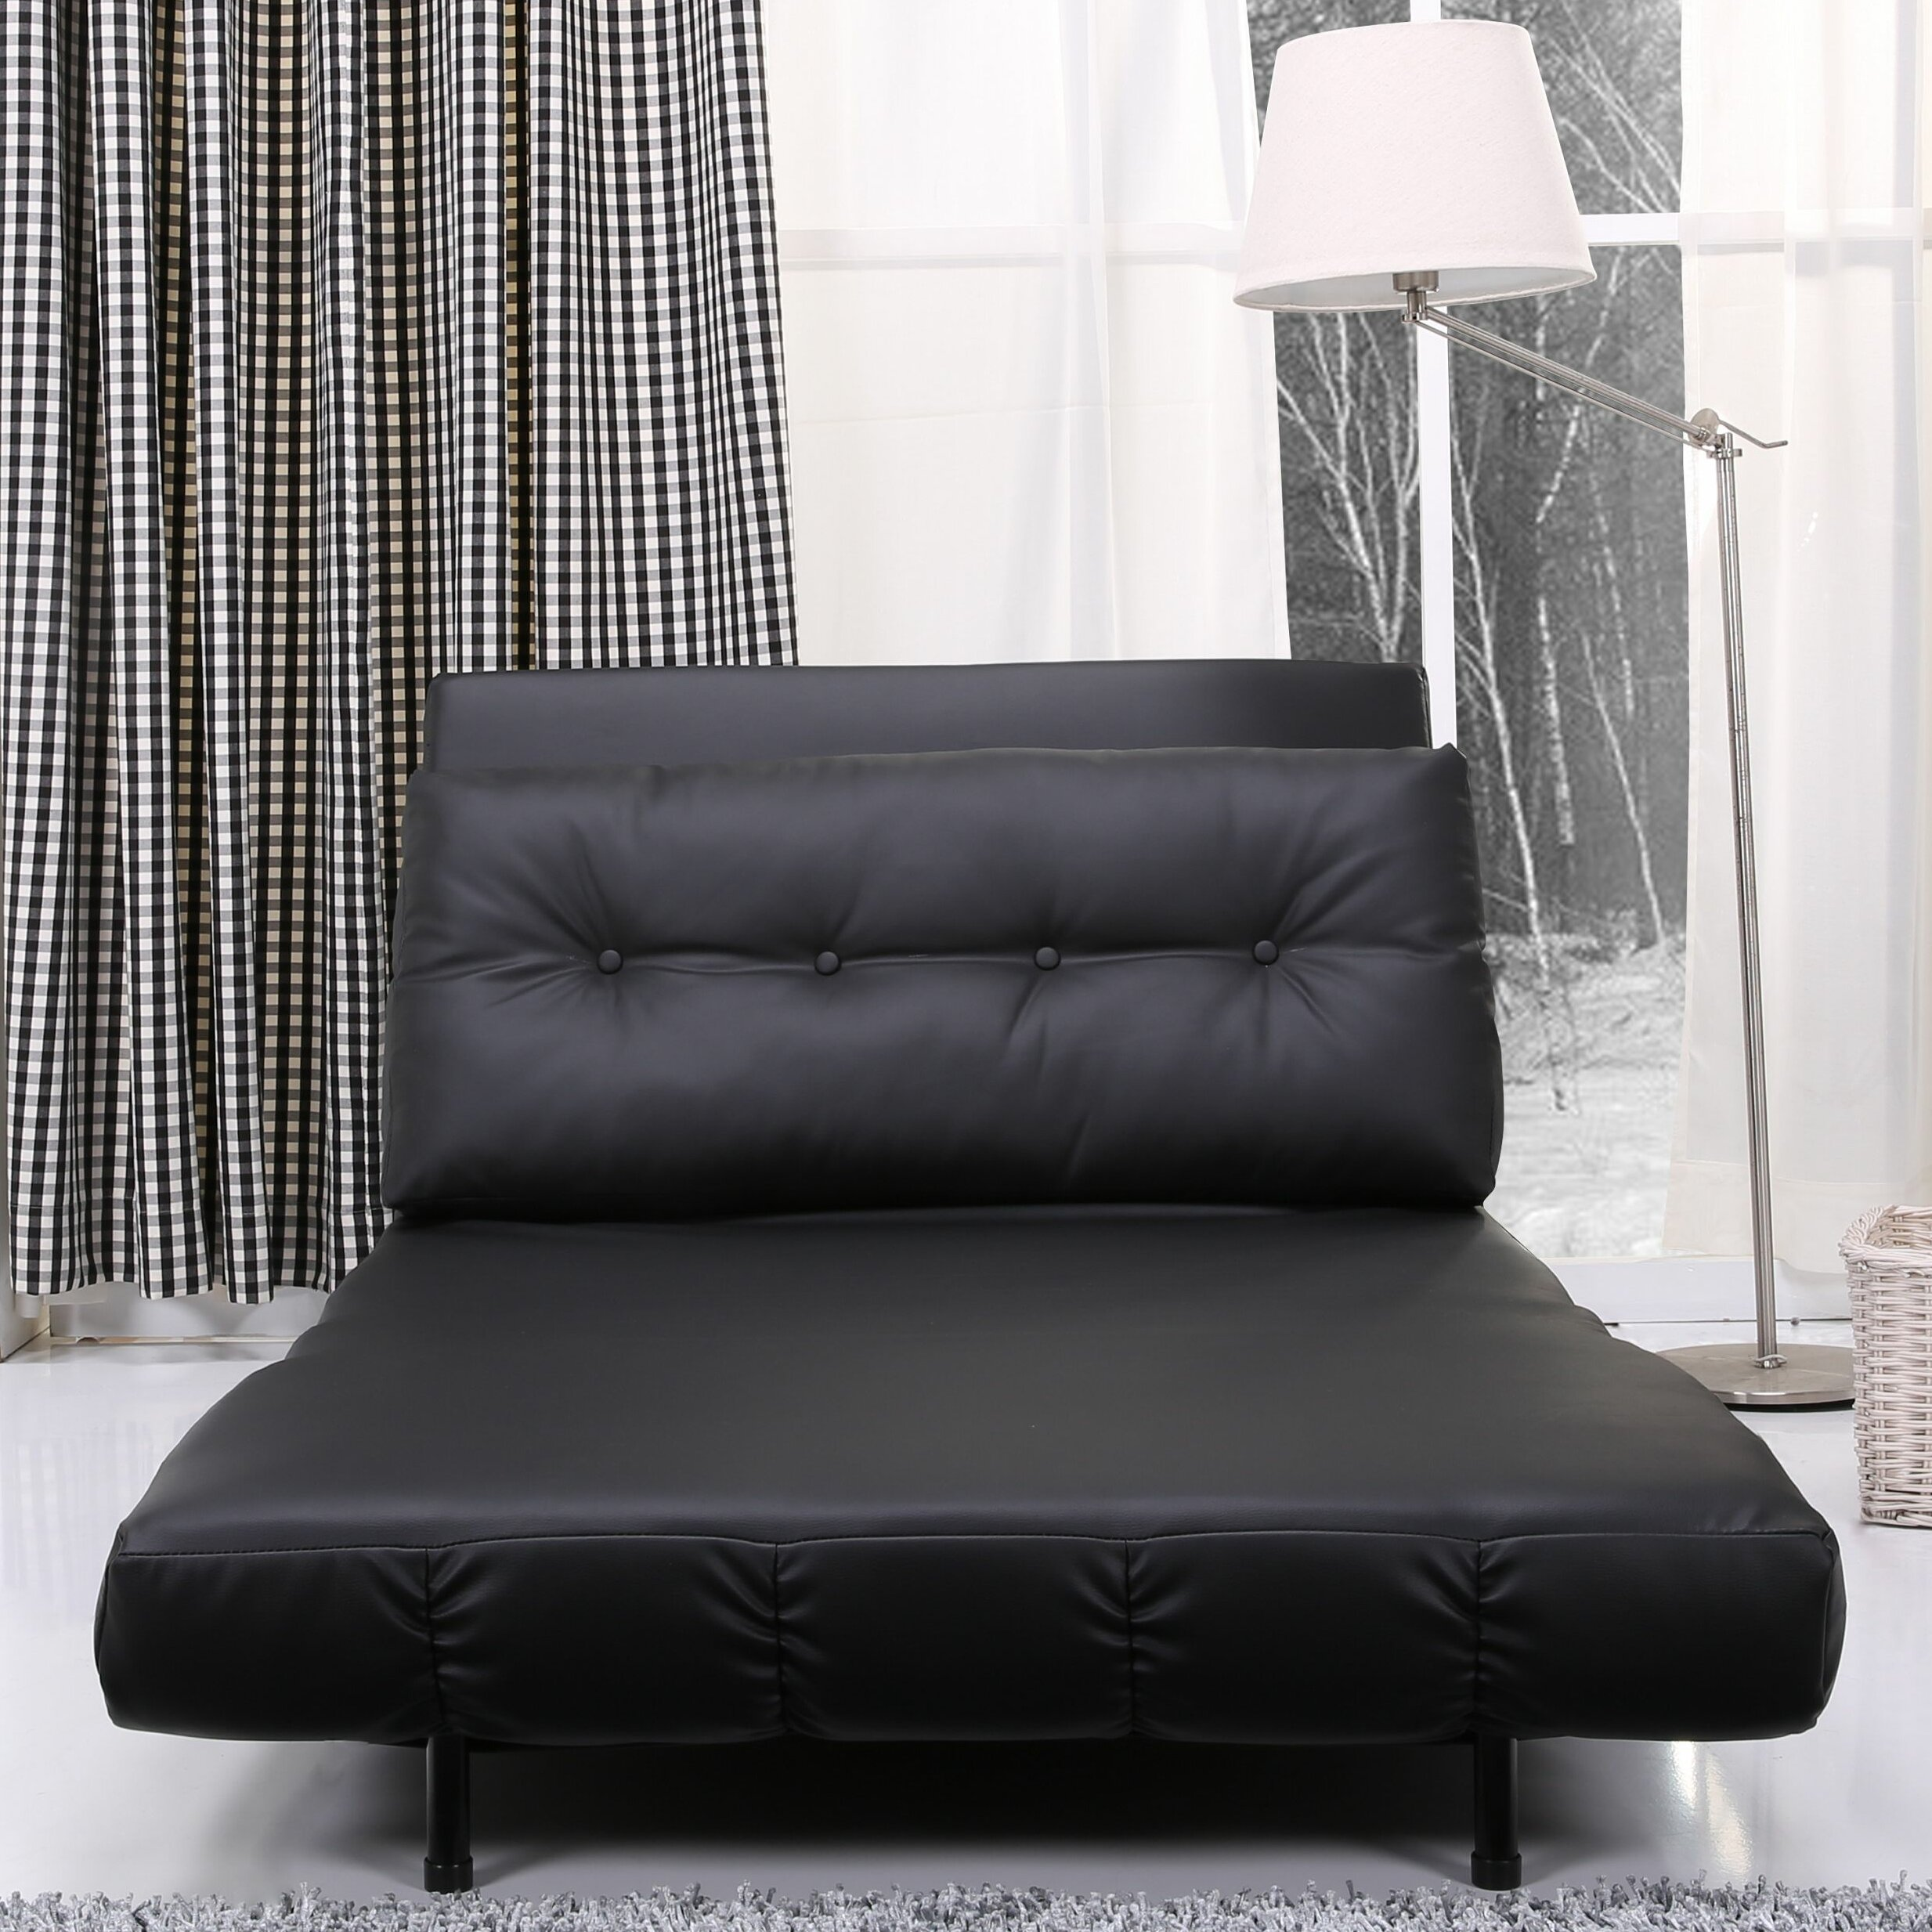 leader lifestyle romeo clic clac convertible futon chair reviews wayfair uk. Black Bedroom Furniture Sets. Home Design Ideas